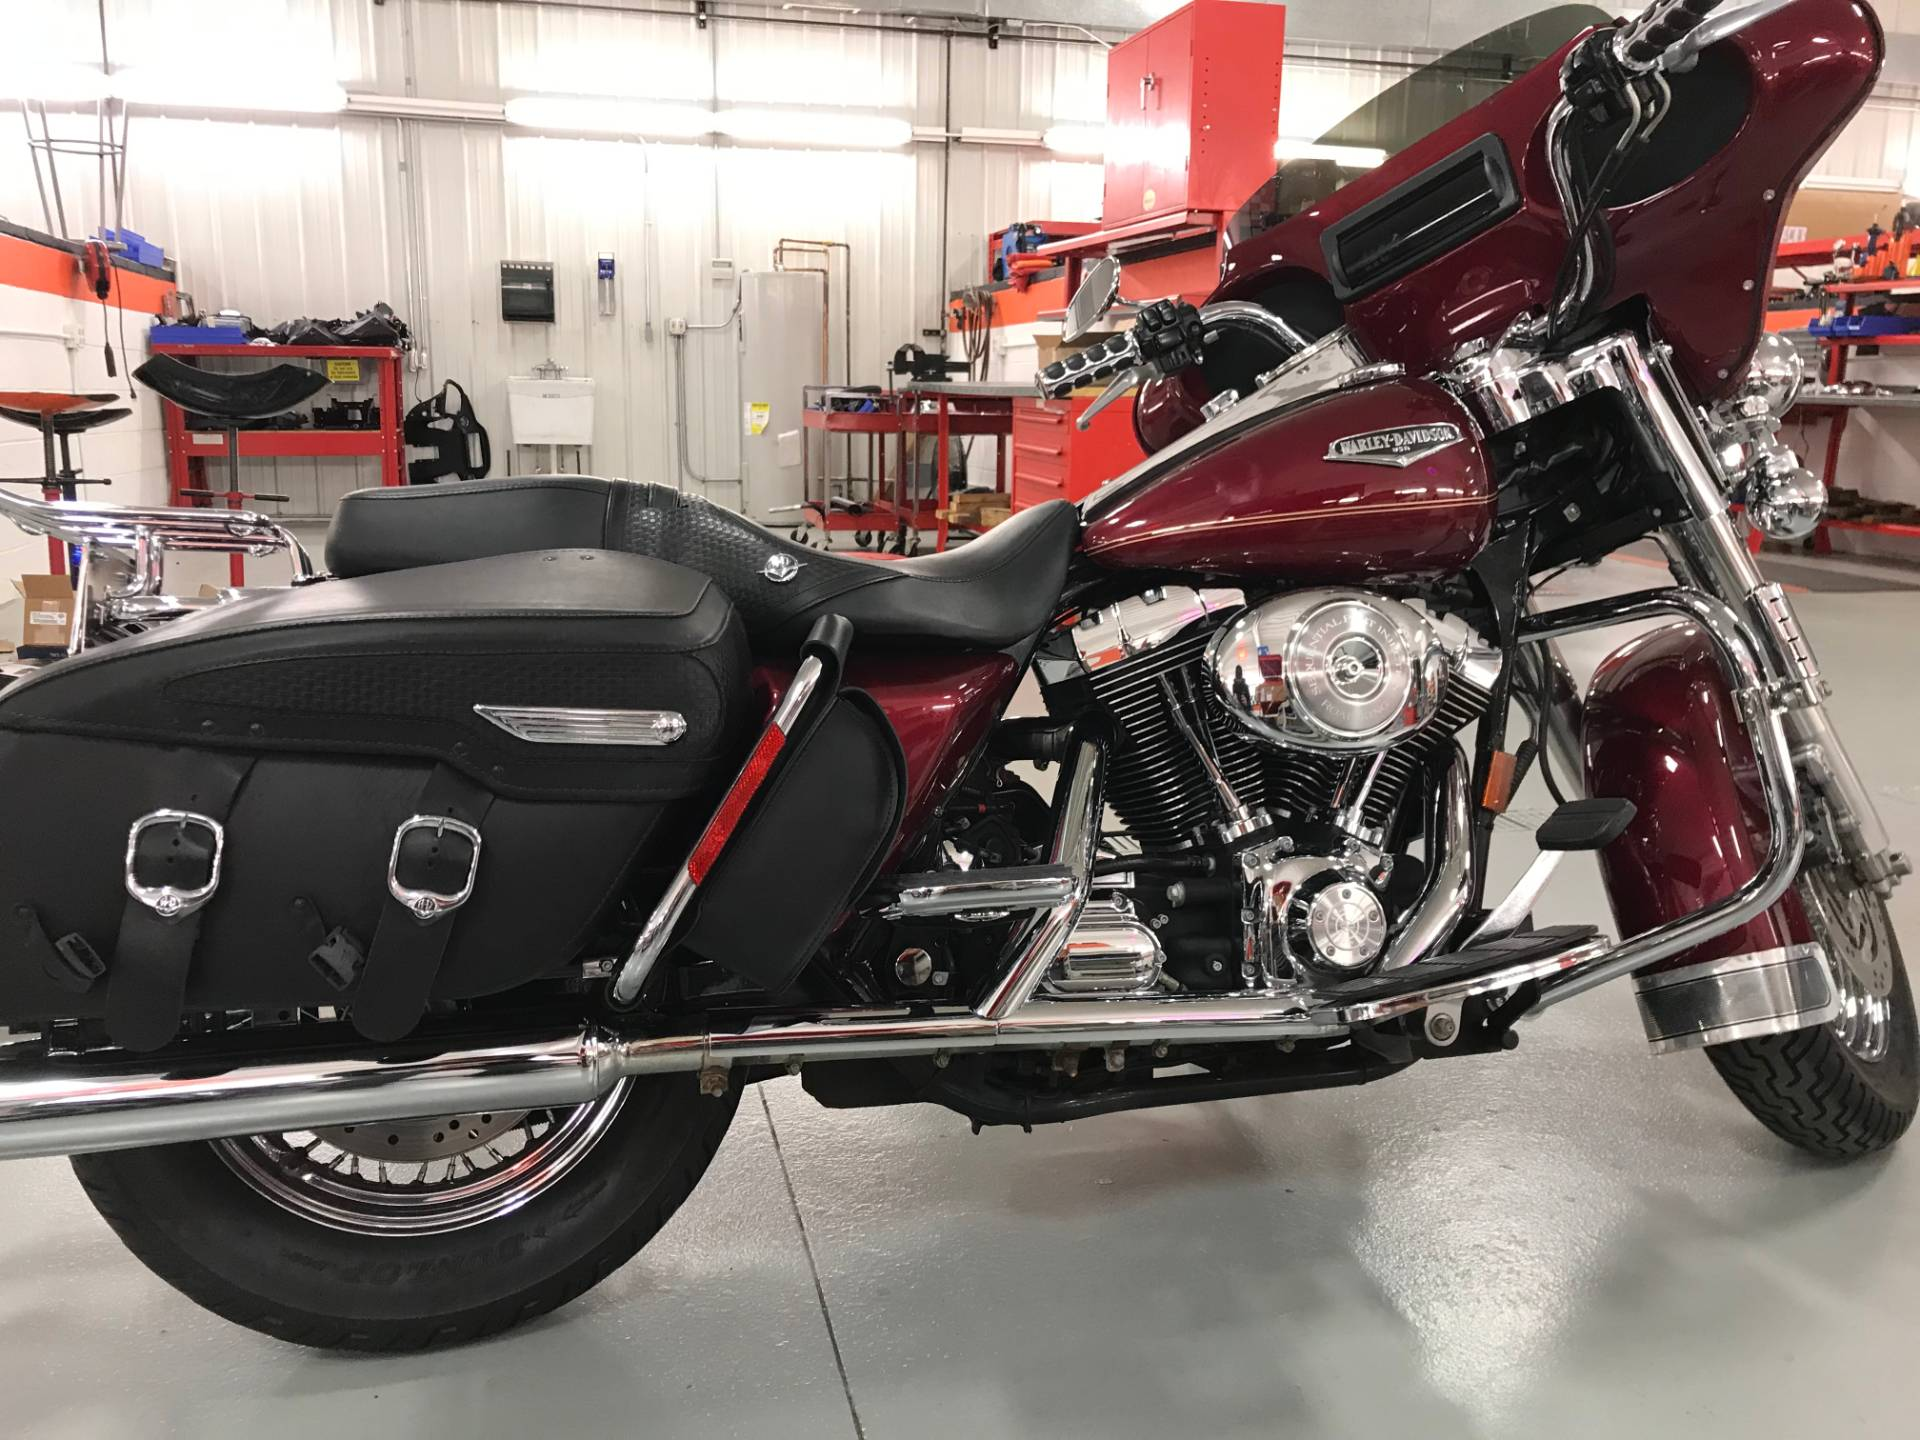 2005 Harley-Davidson FLHRCI Road King® Classic in Valparaiso, Indiana - Photo 3